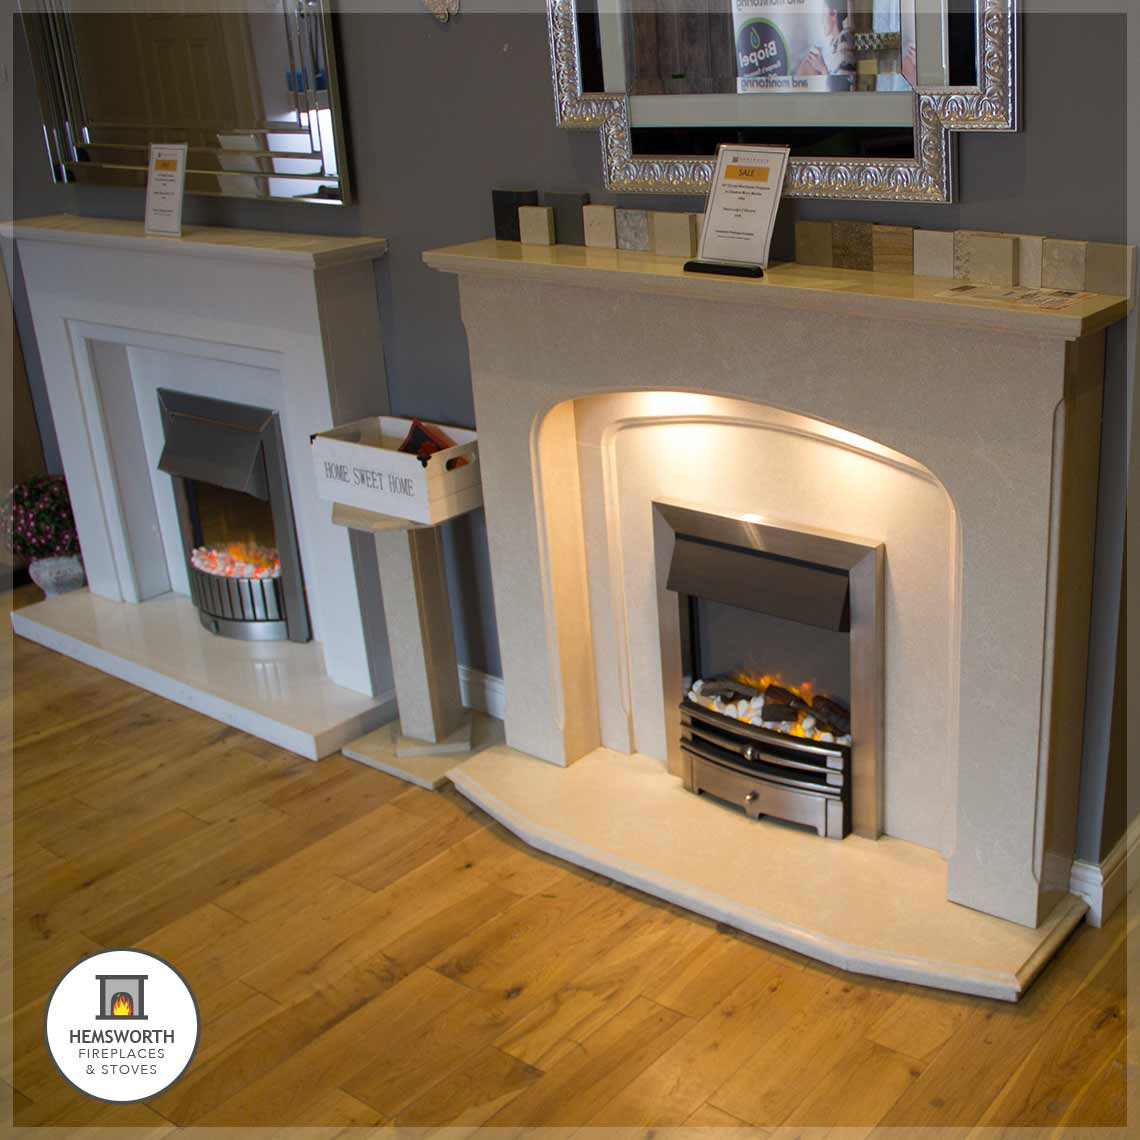 Hemsworth Fireplaces EcoTech Stoves showroom